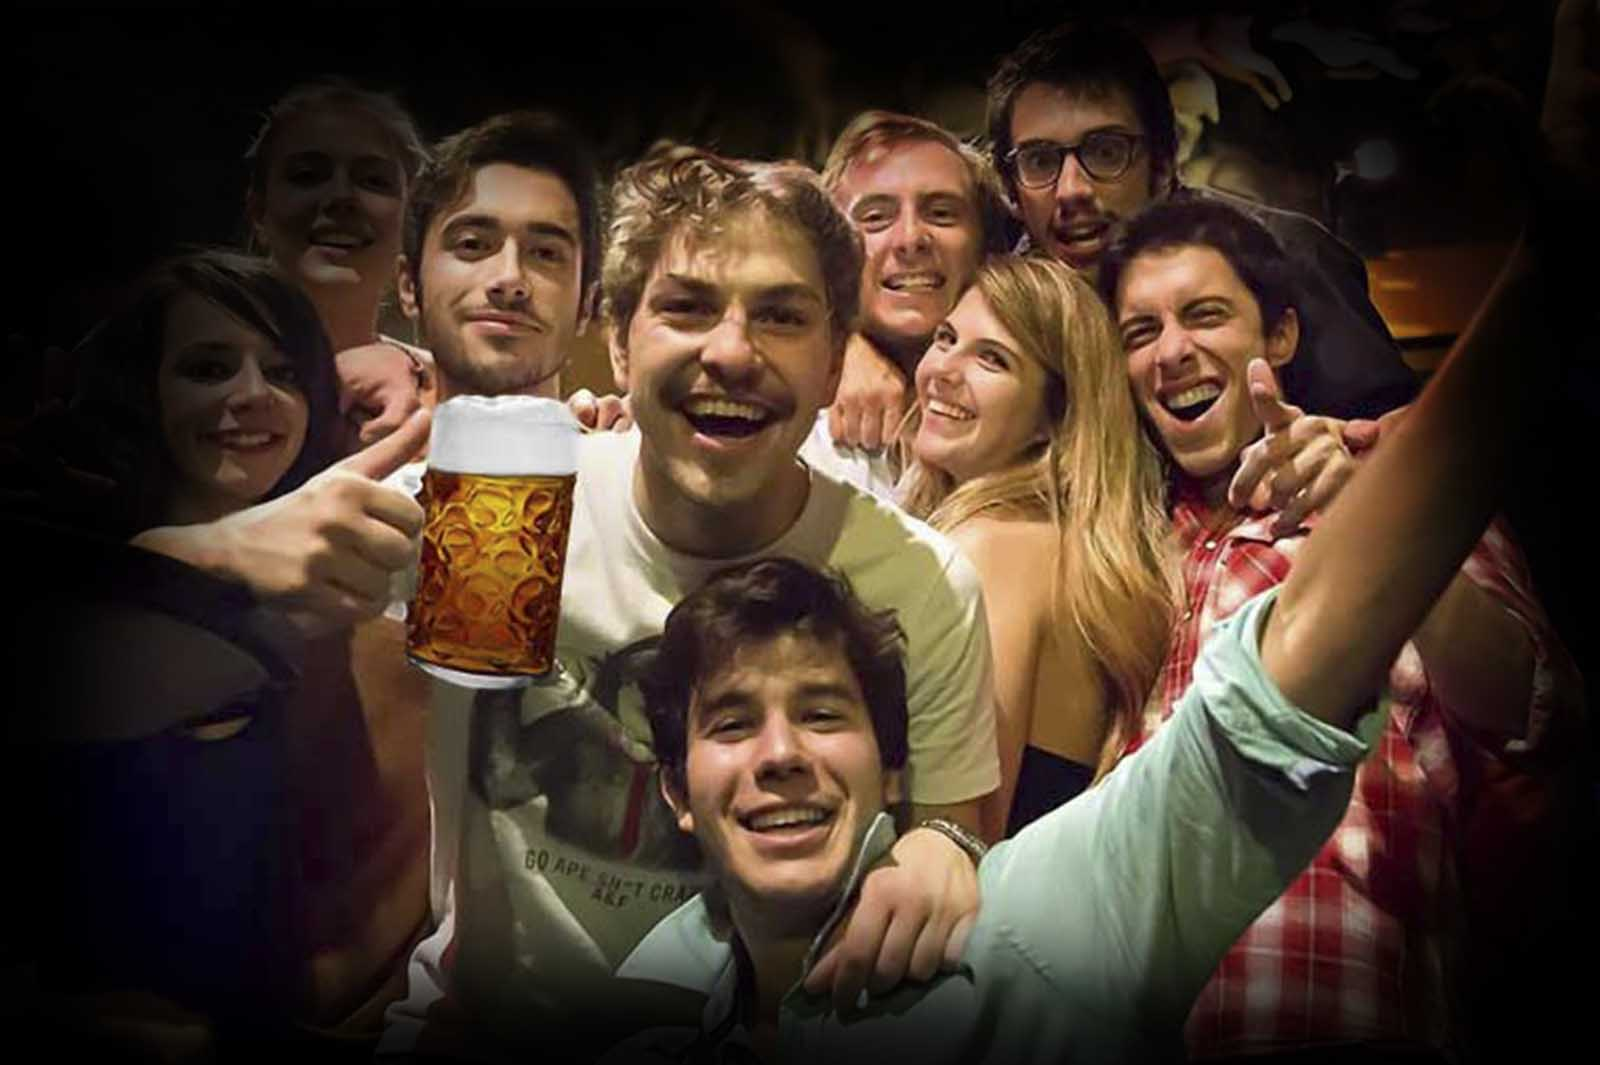 A lot of friend, a lot of drink Budapest Stag Do